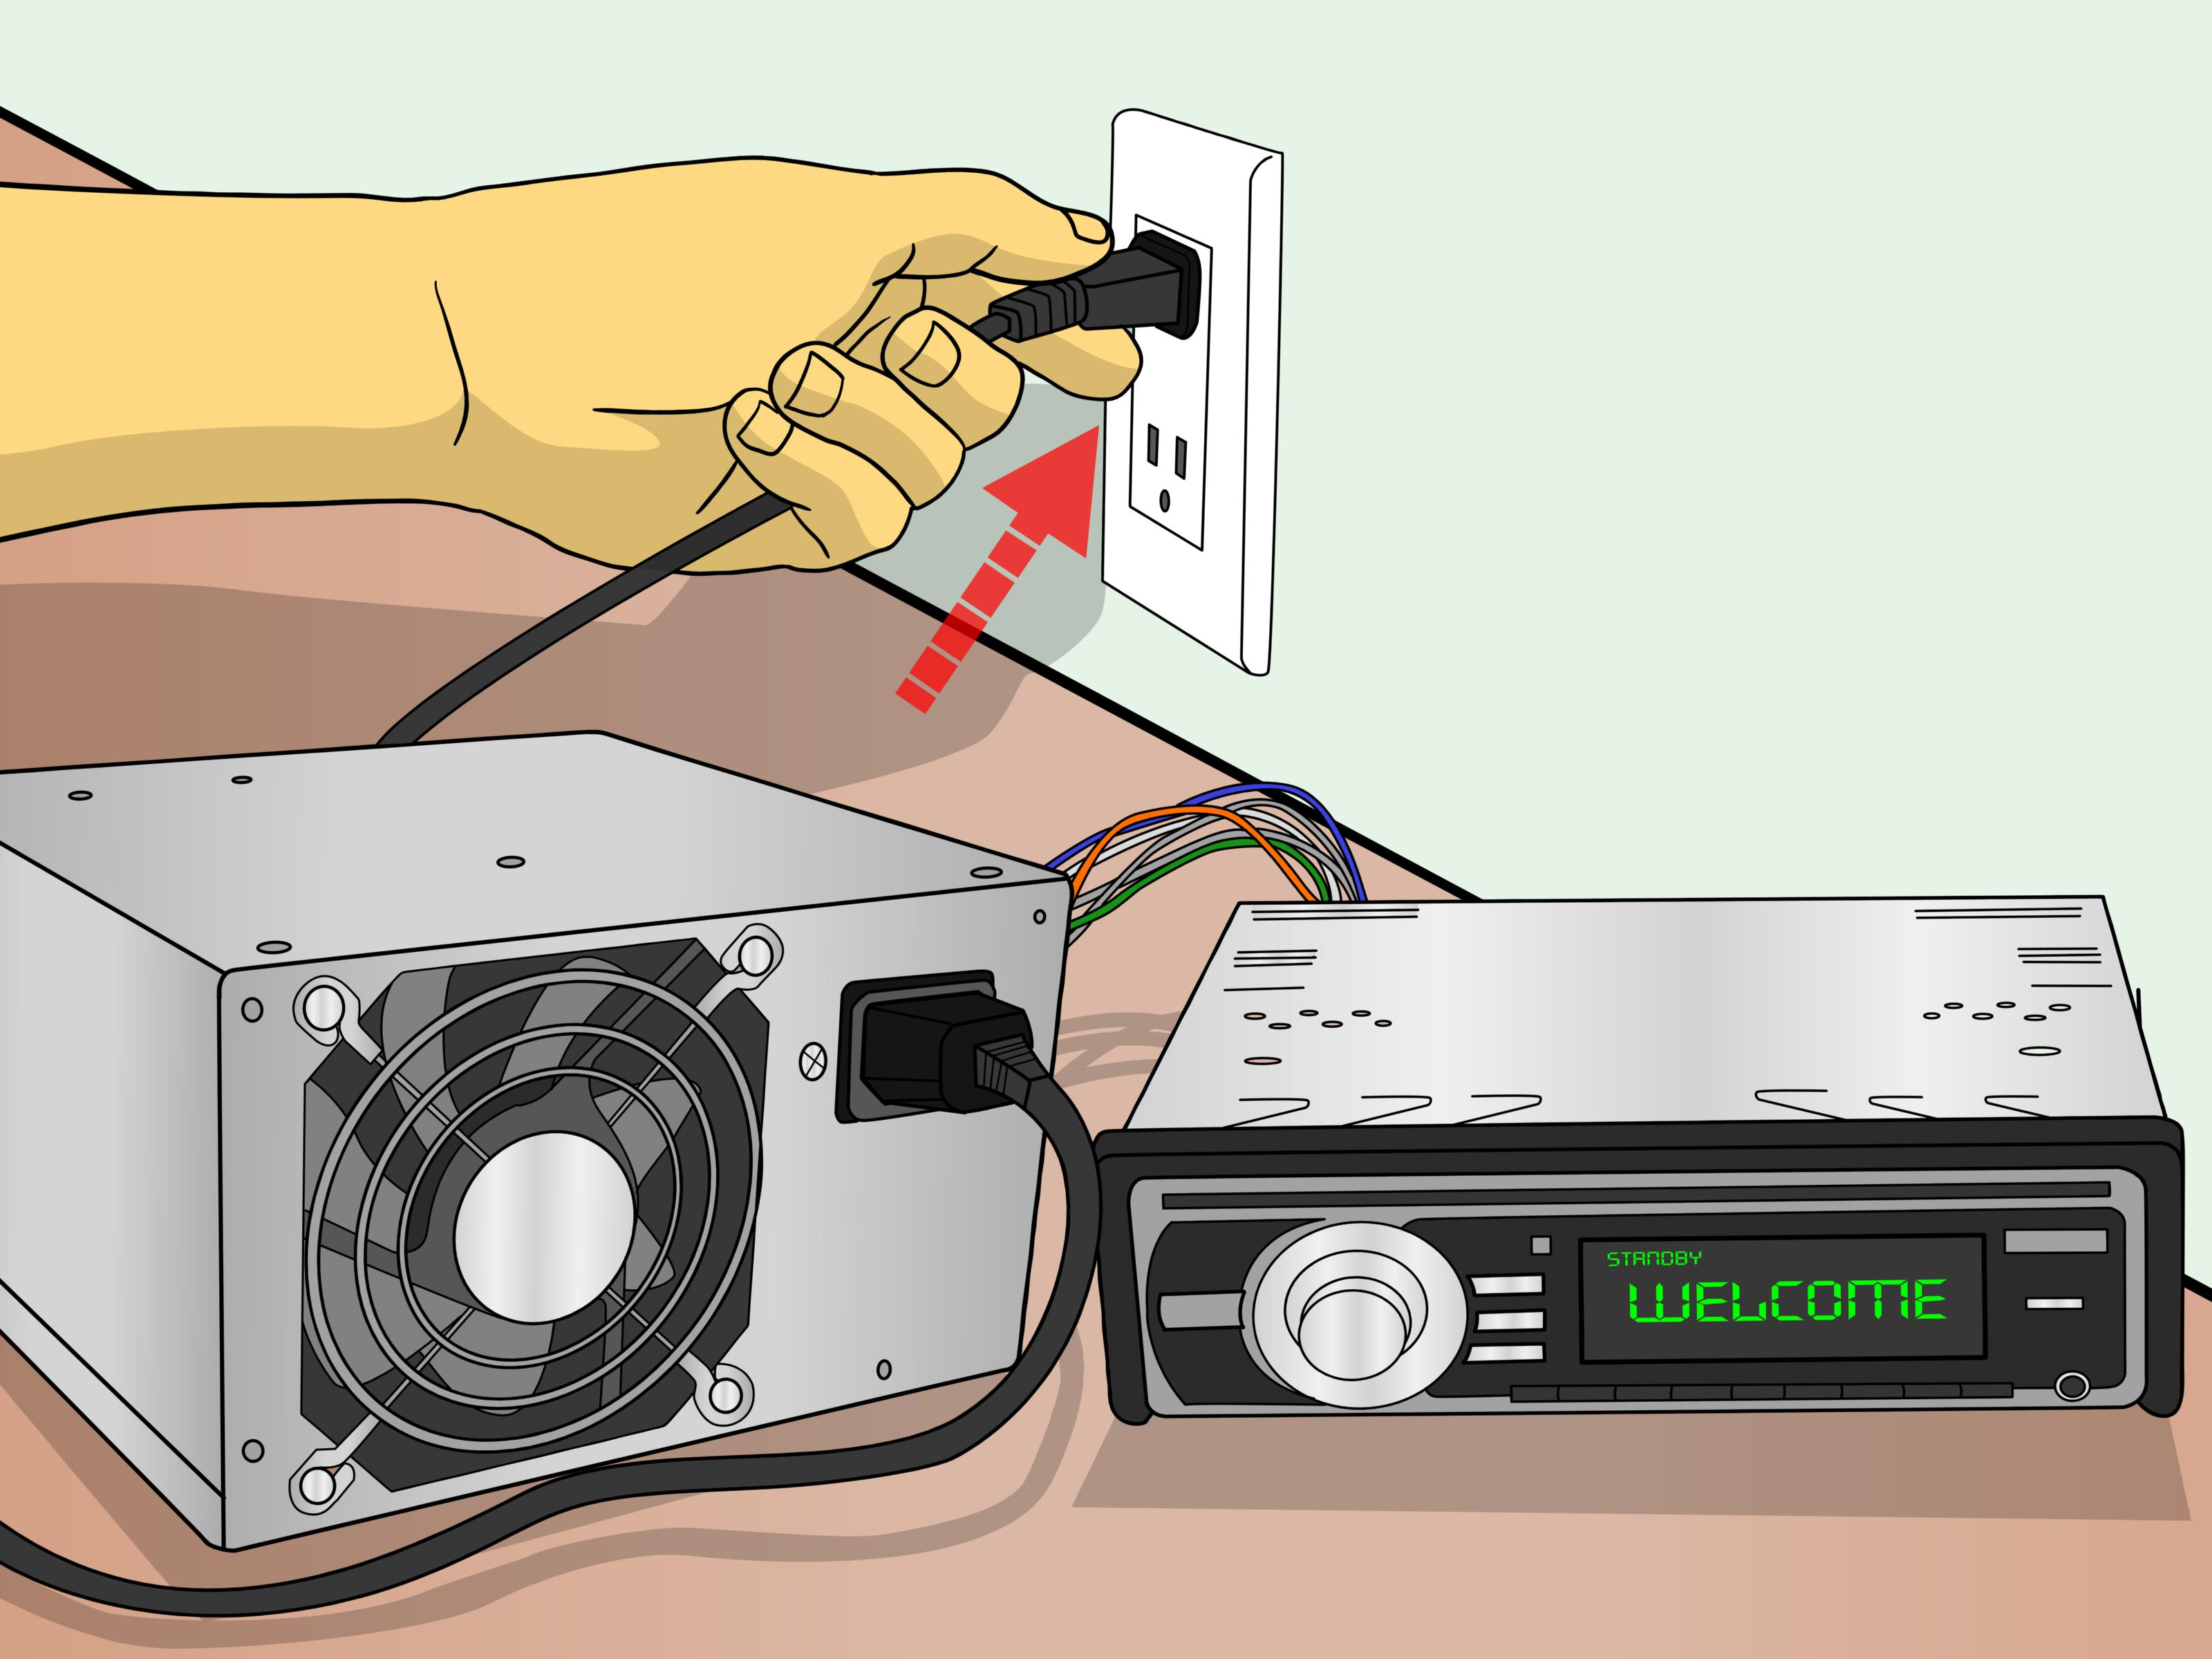 powered subwoofer home audio wiring diagrams diagram program 0f igesetze de how to connect a car stereo for house use with psu 11 steps rh wikihow com